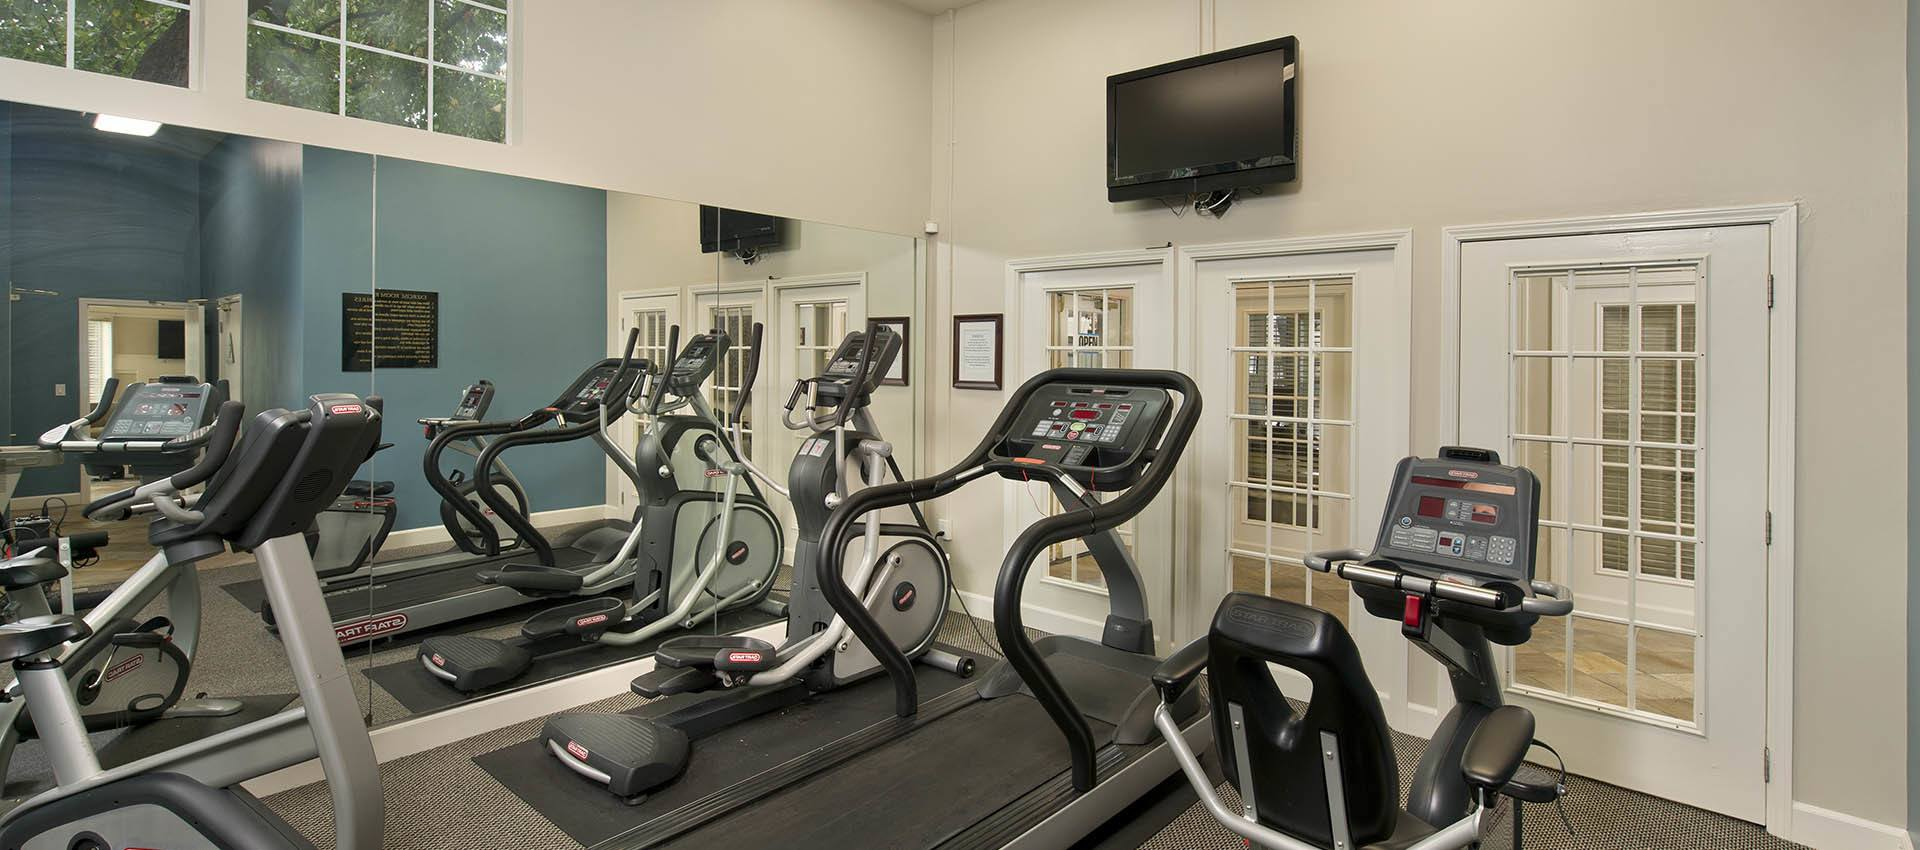 Fitness Center at Mill Springs Park Apartment Homes in Livermore